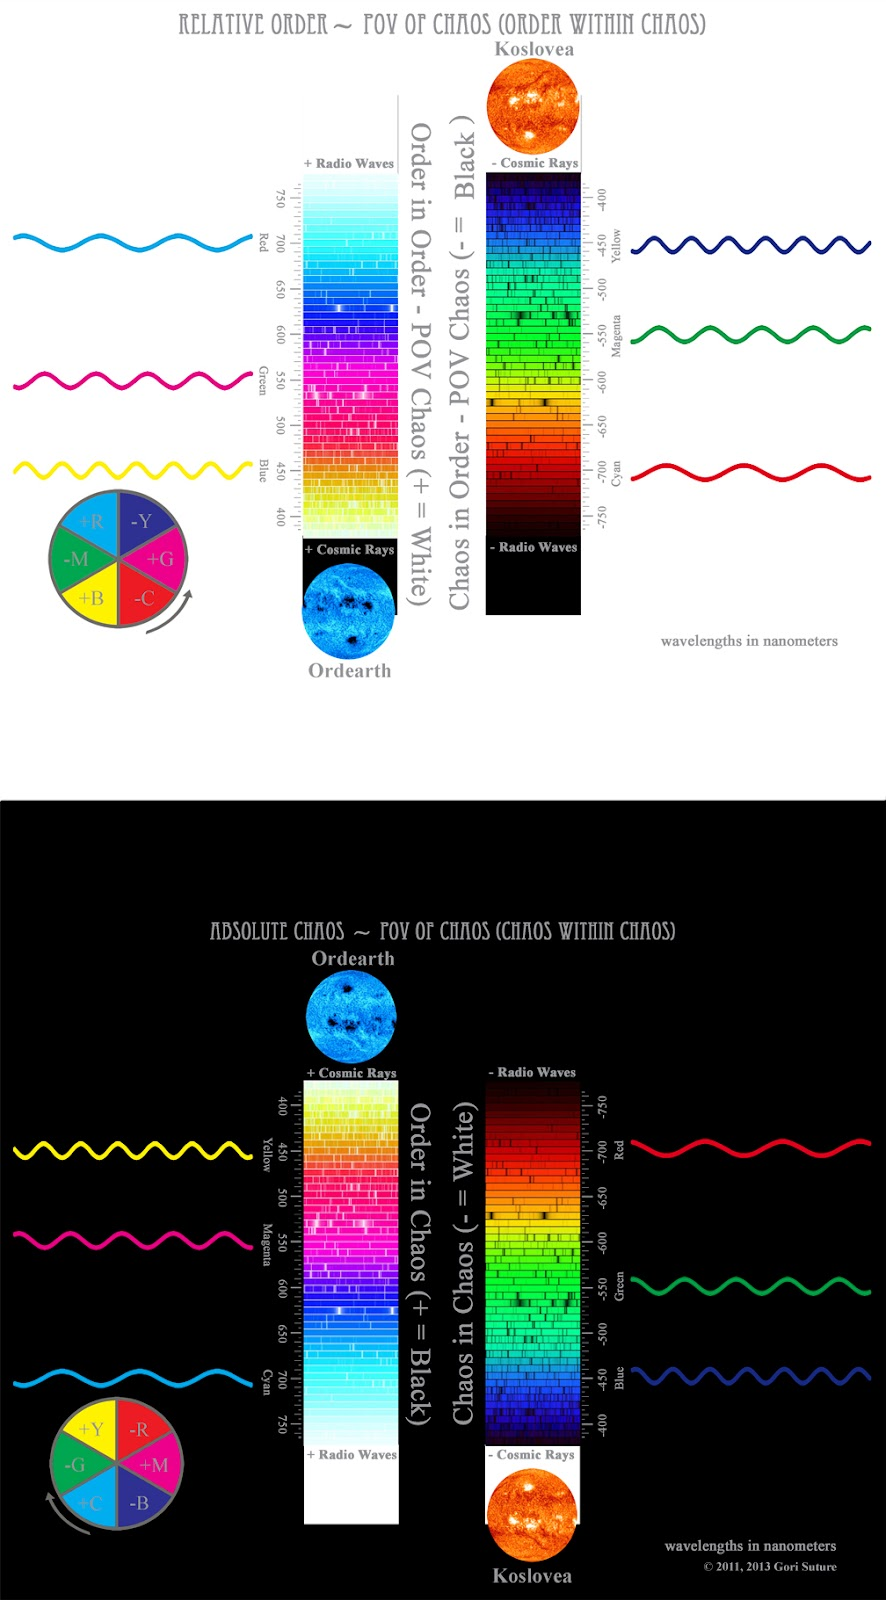 This illustration compares the wavelengths of additive light (CMY), known also as order light or positive light, with the wavelengths of theoretical subtractive light (RGB), known also as chaos light or negative light.  Since this image is from the point of view of an entity made of chaos light, chaos is absolute & order is relative.